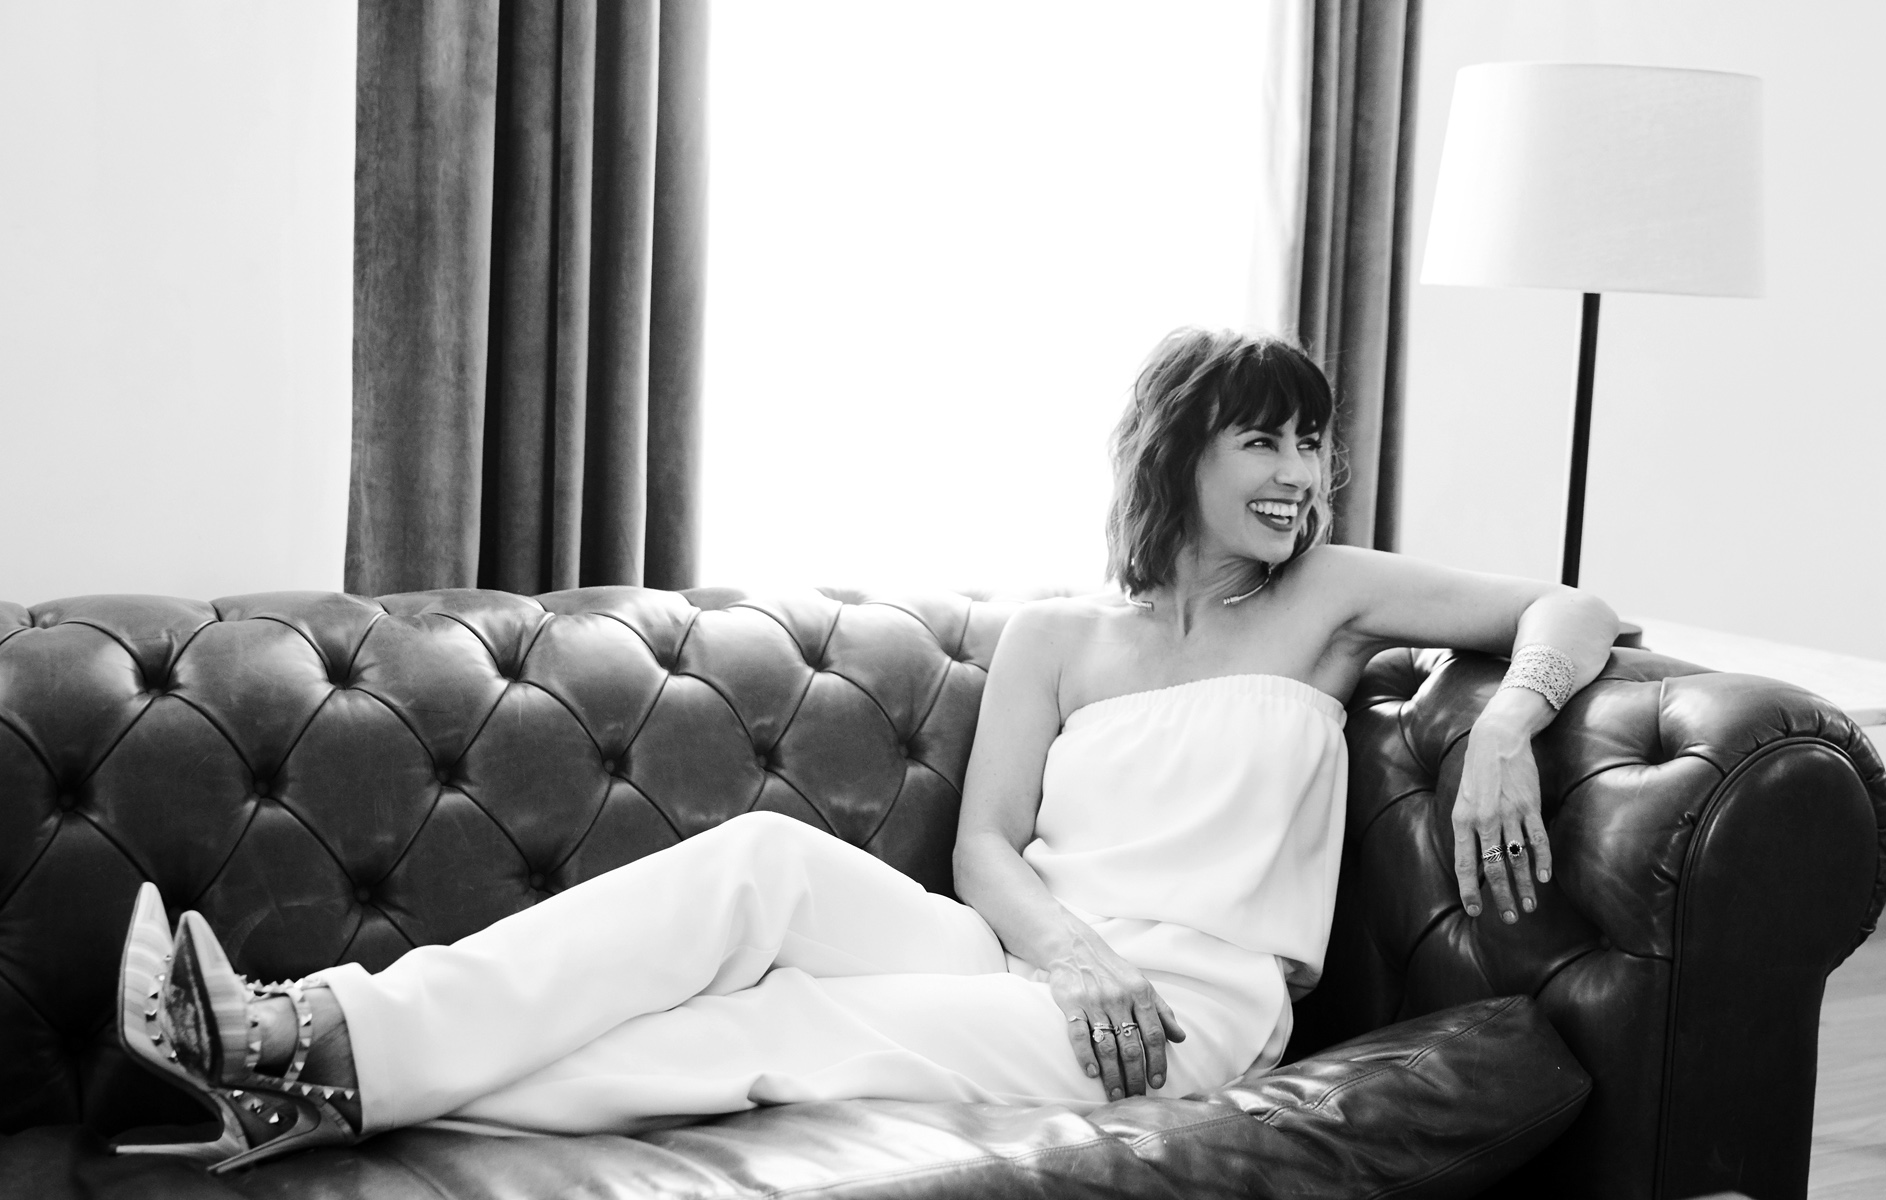 Constance Zimmer for The WrapPhoto by Matt Sayles@msayleswww.mattsaylesphoto.com